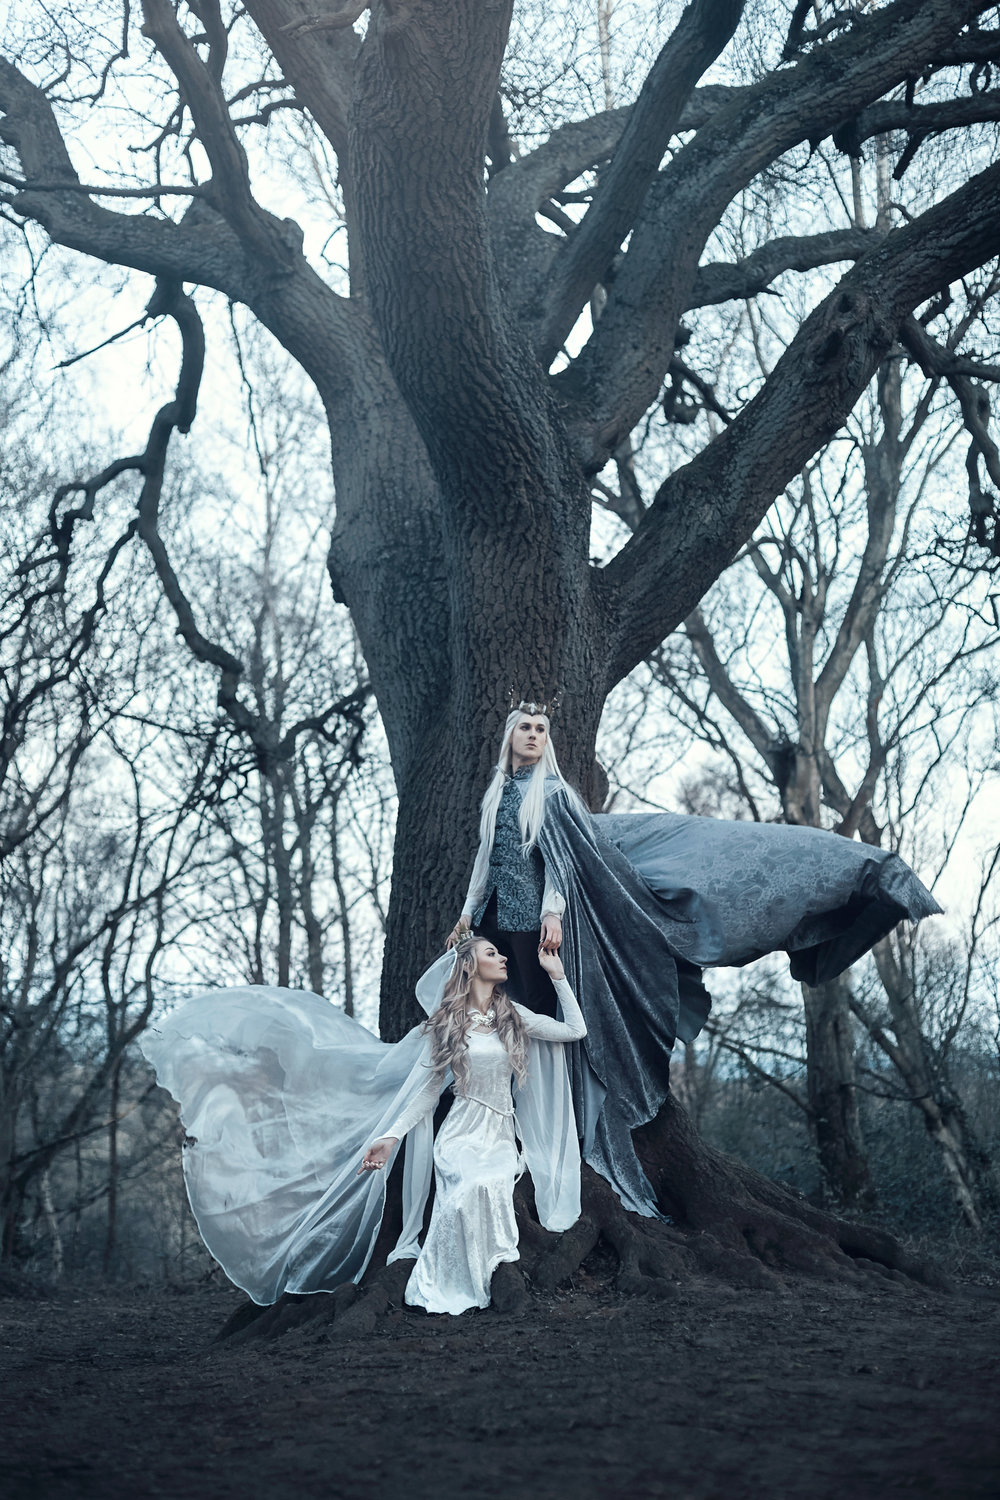 bella_kotak_fairytale-fashion-fantasy-photography-tolkien-lord-of-the-rings-inspired-shotover-oxford-12.jpg